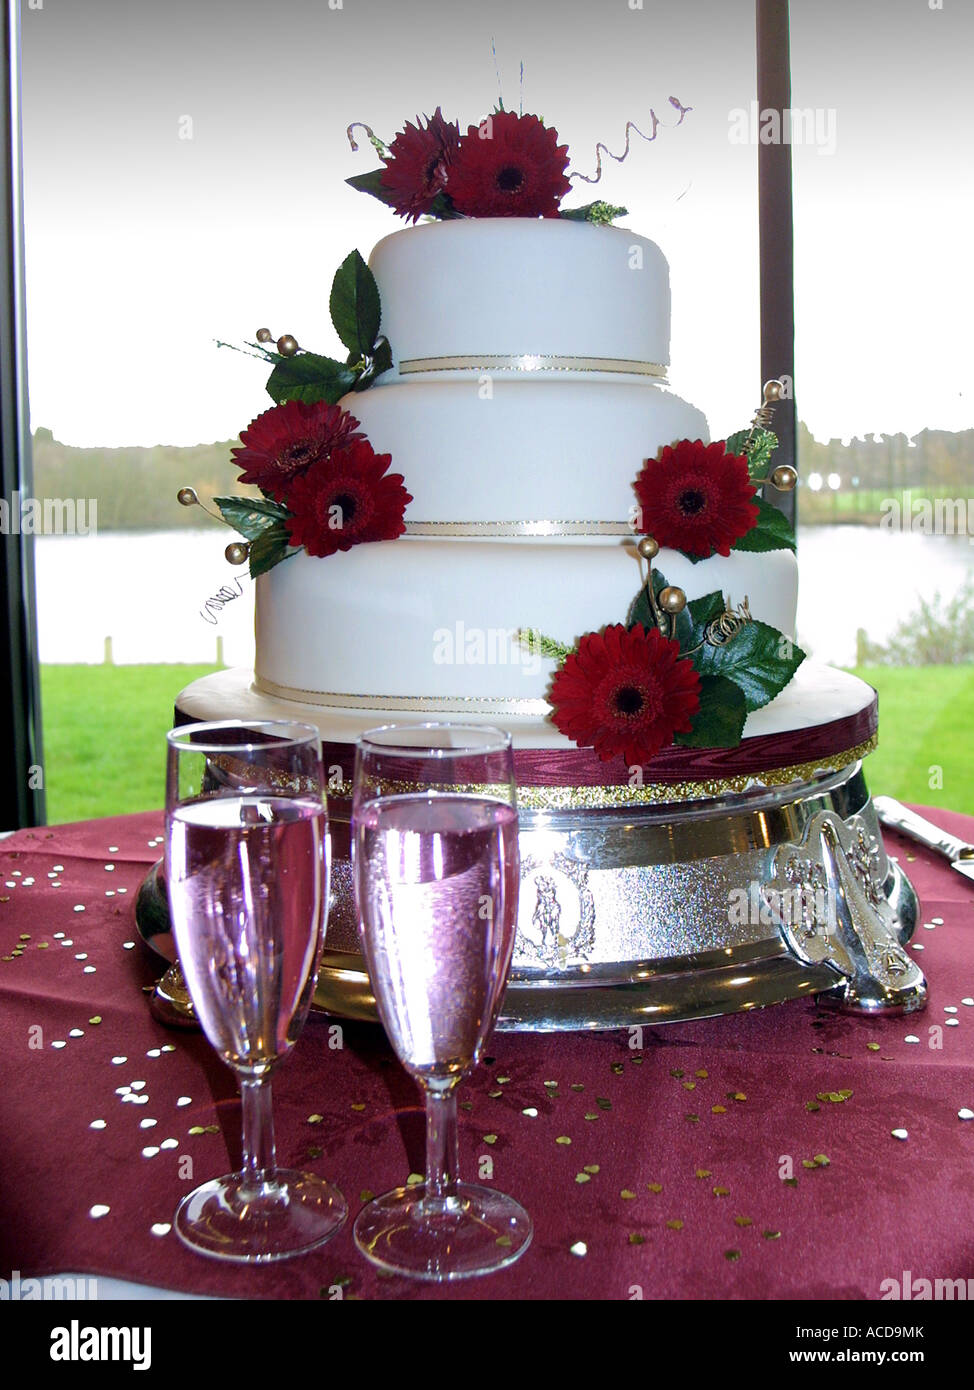 A 3 Tier White Wedding Cake With Red Roses As Decorations And 2 Full